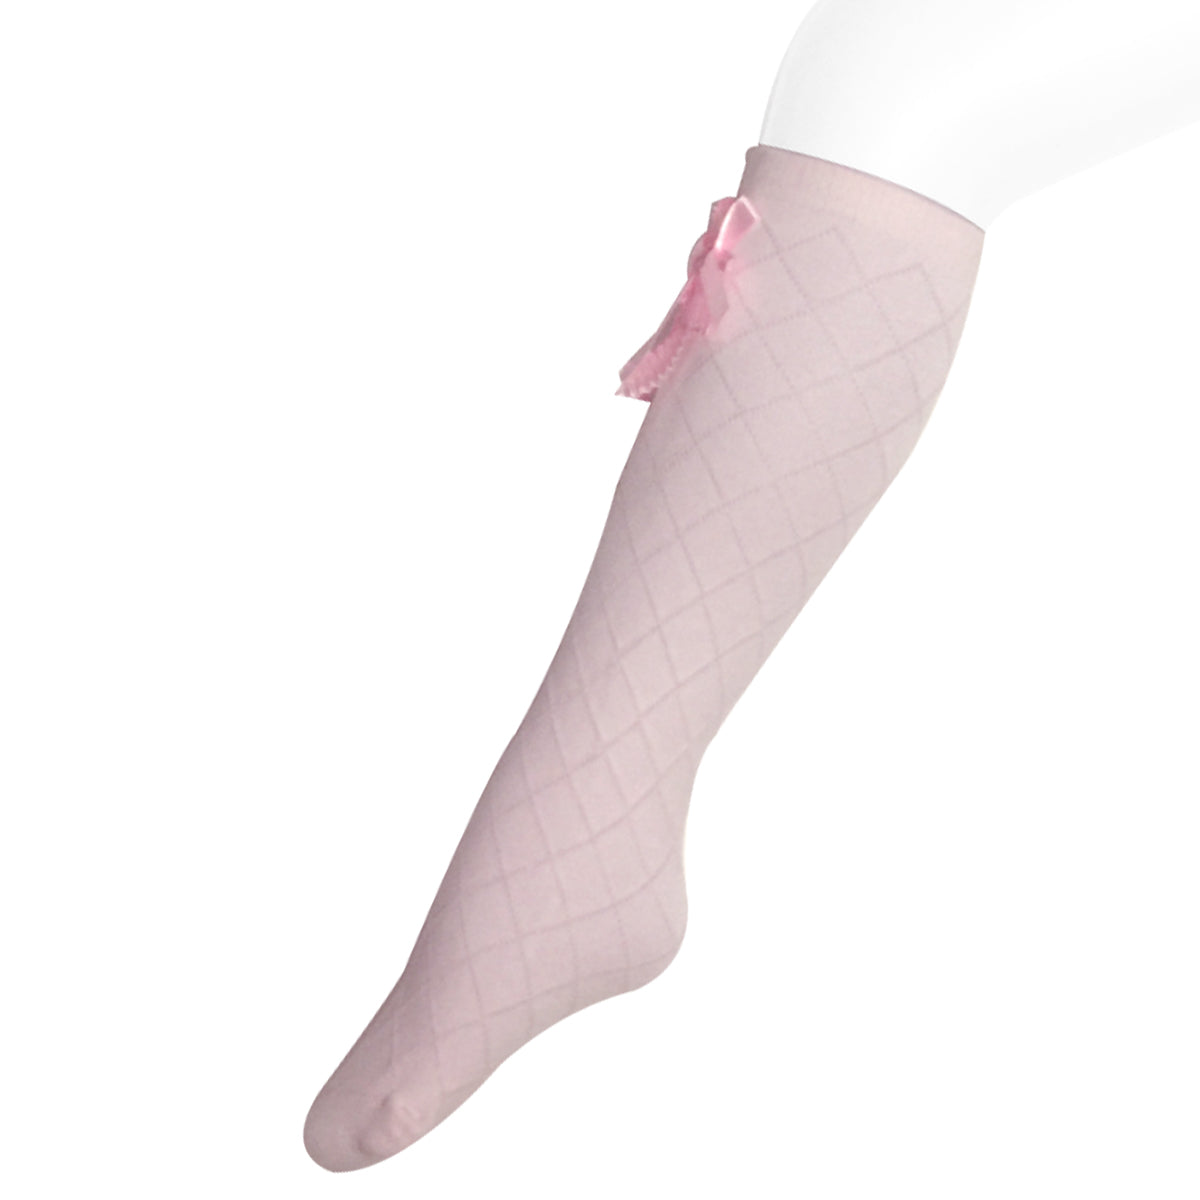 Wrapables Knee High Diamond Pattern Girl Socks (Set of 4)